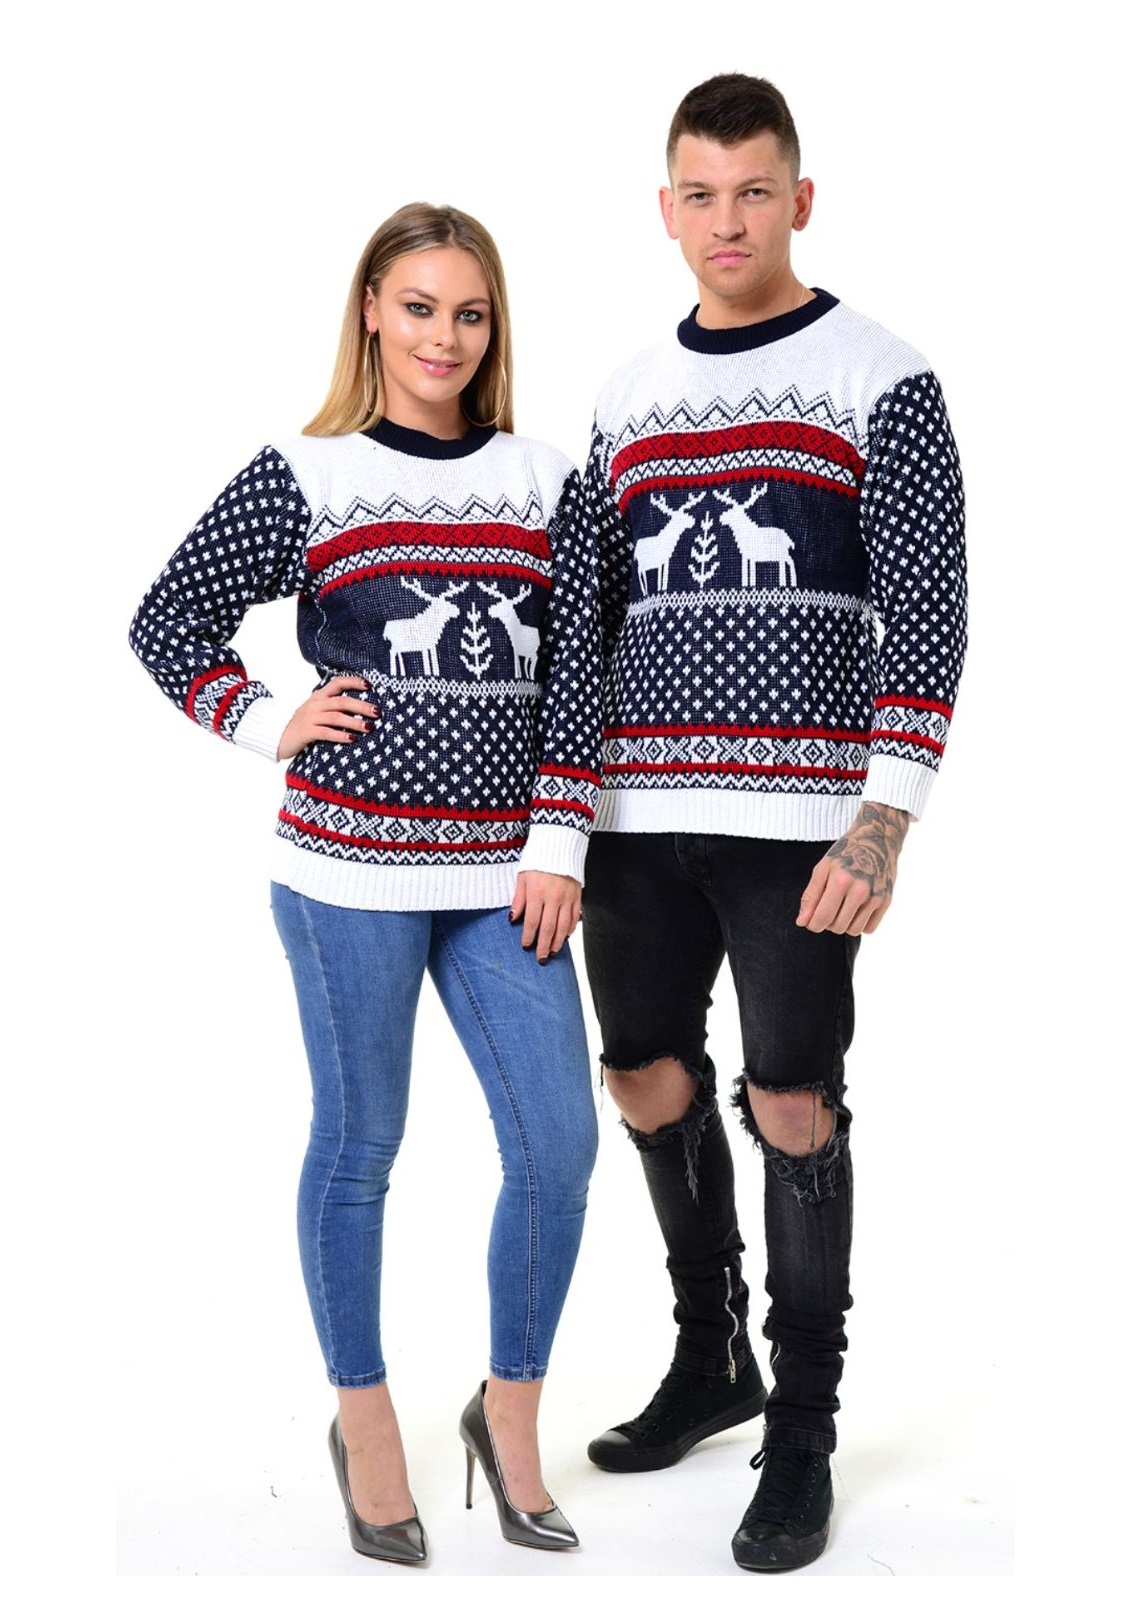 MEN'S XMAS NOVELTY KNITTED CHRISTMAS   REINDEER SWEATER JUMPER for sale  USA